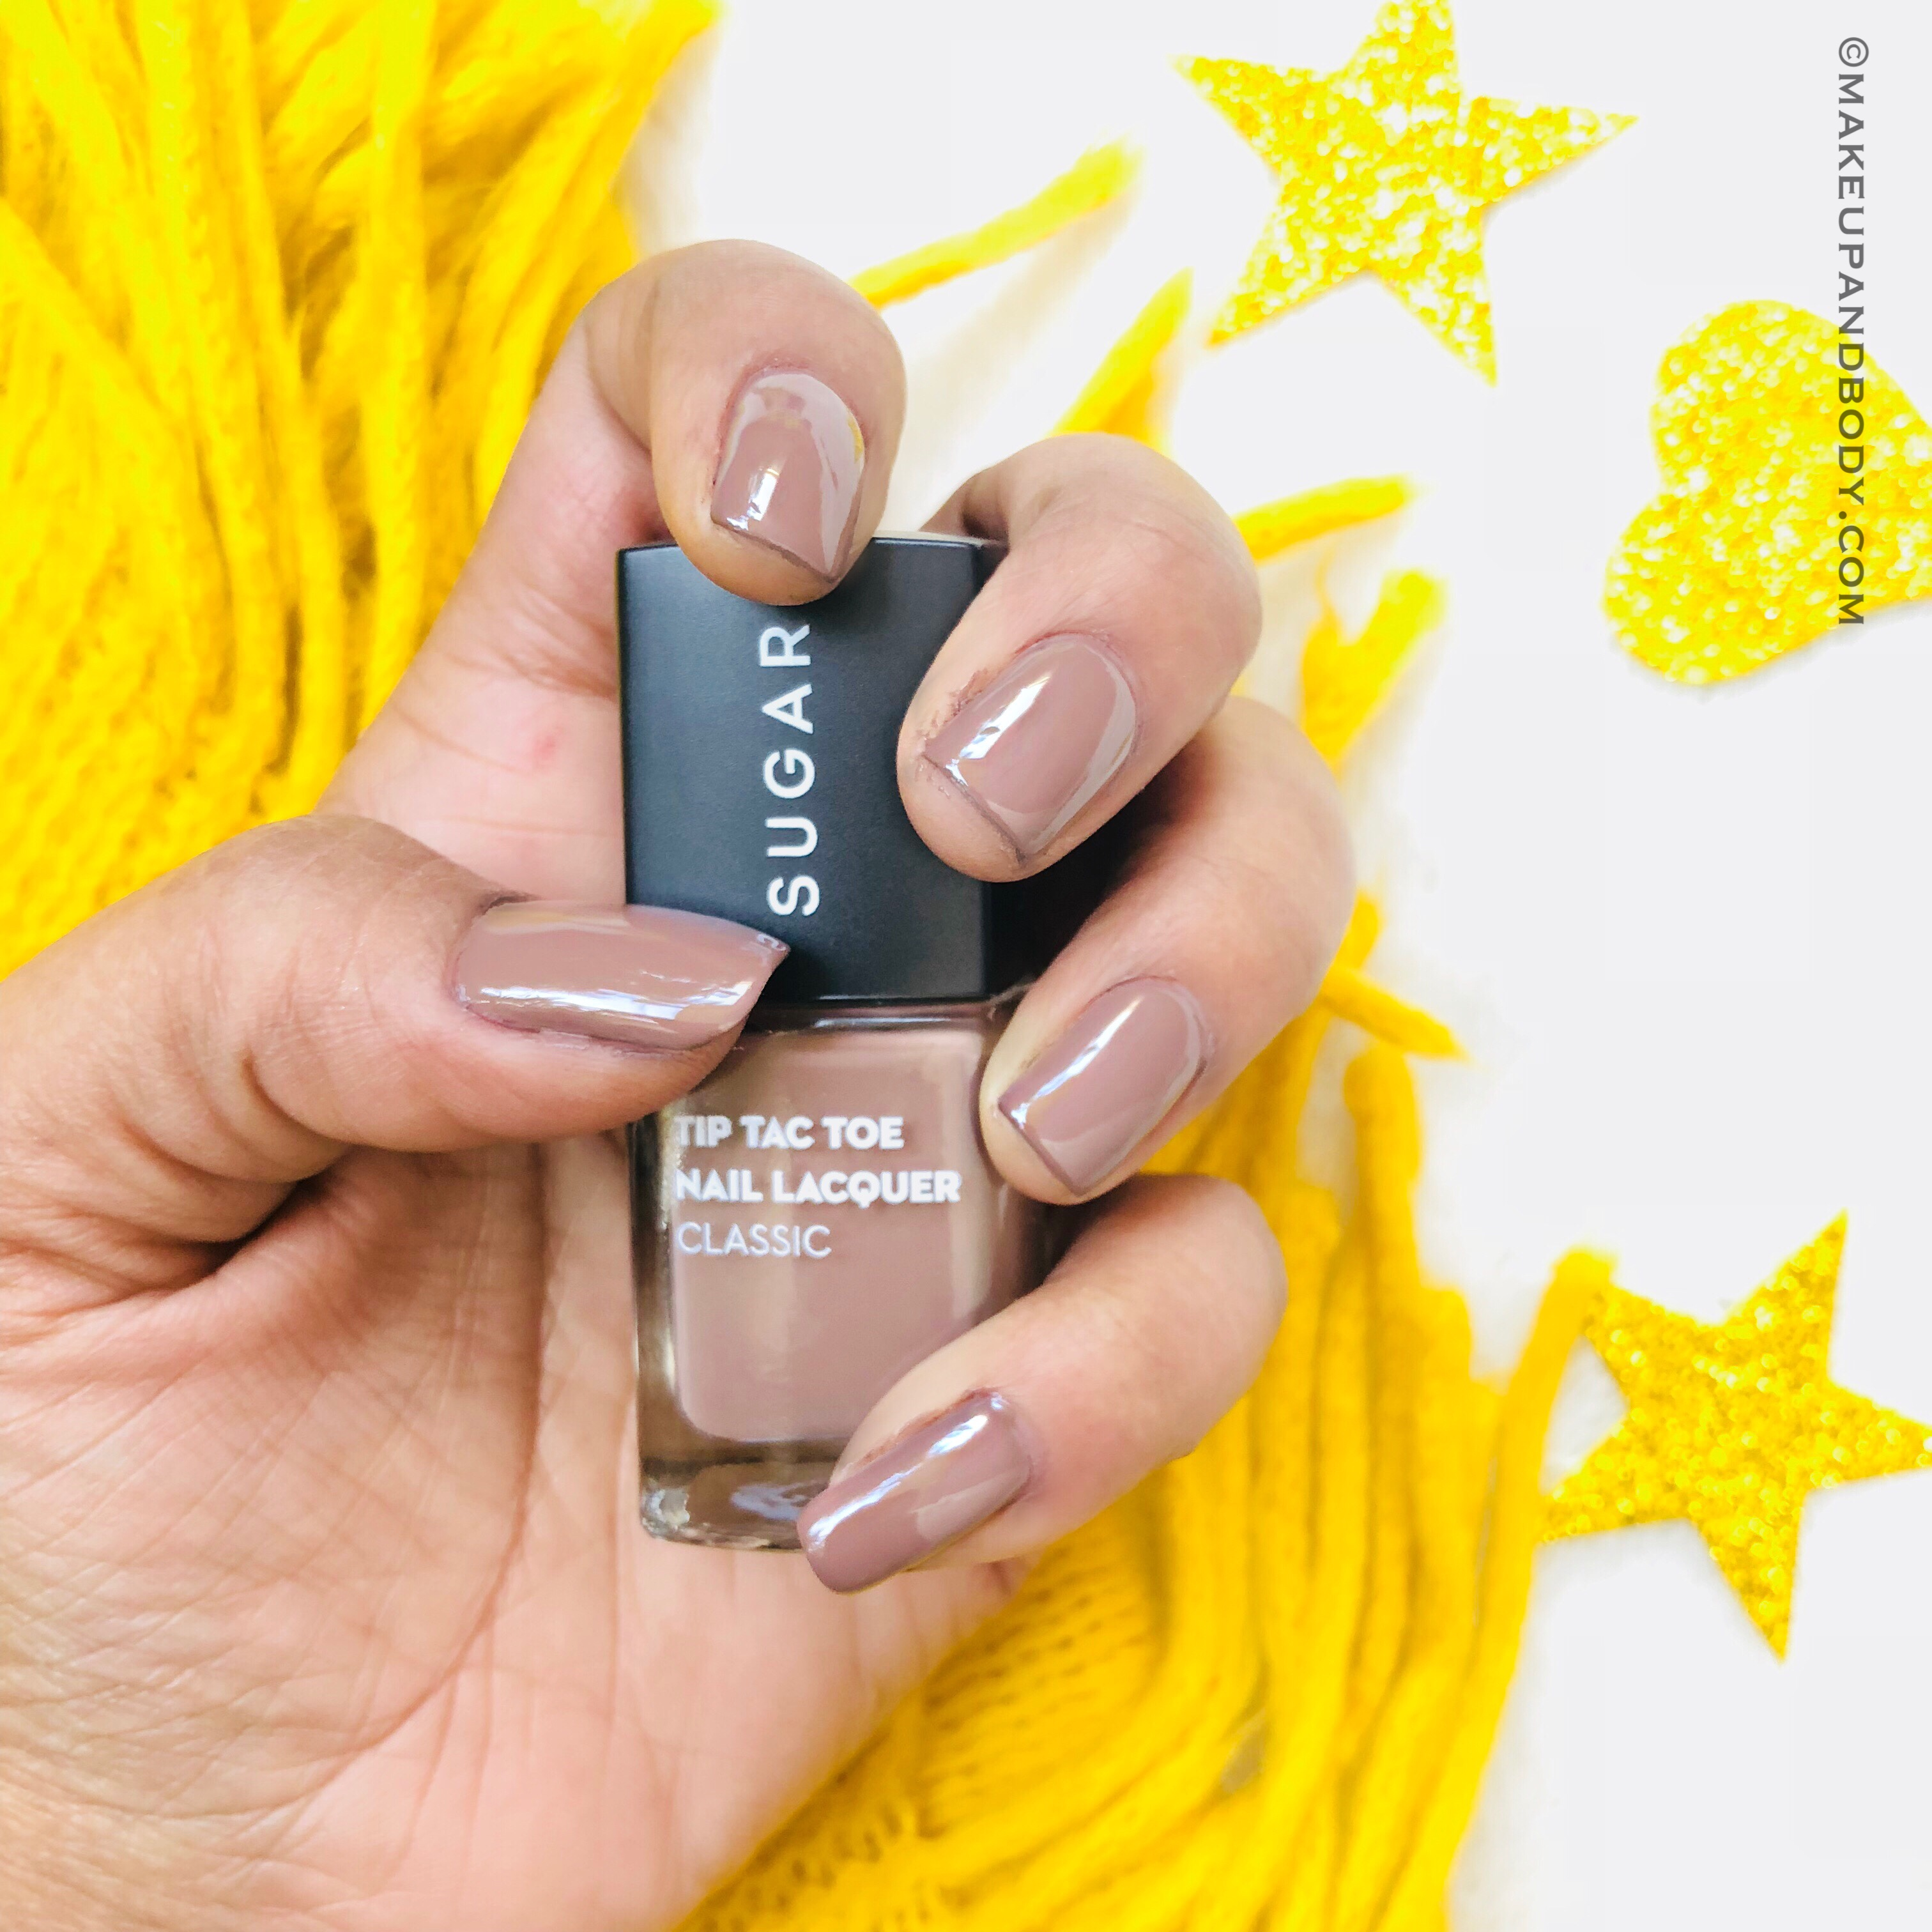 SUGAR Tip Tac Toe Nail Lacquer - 046 To Taupe It All